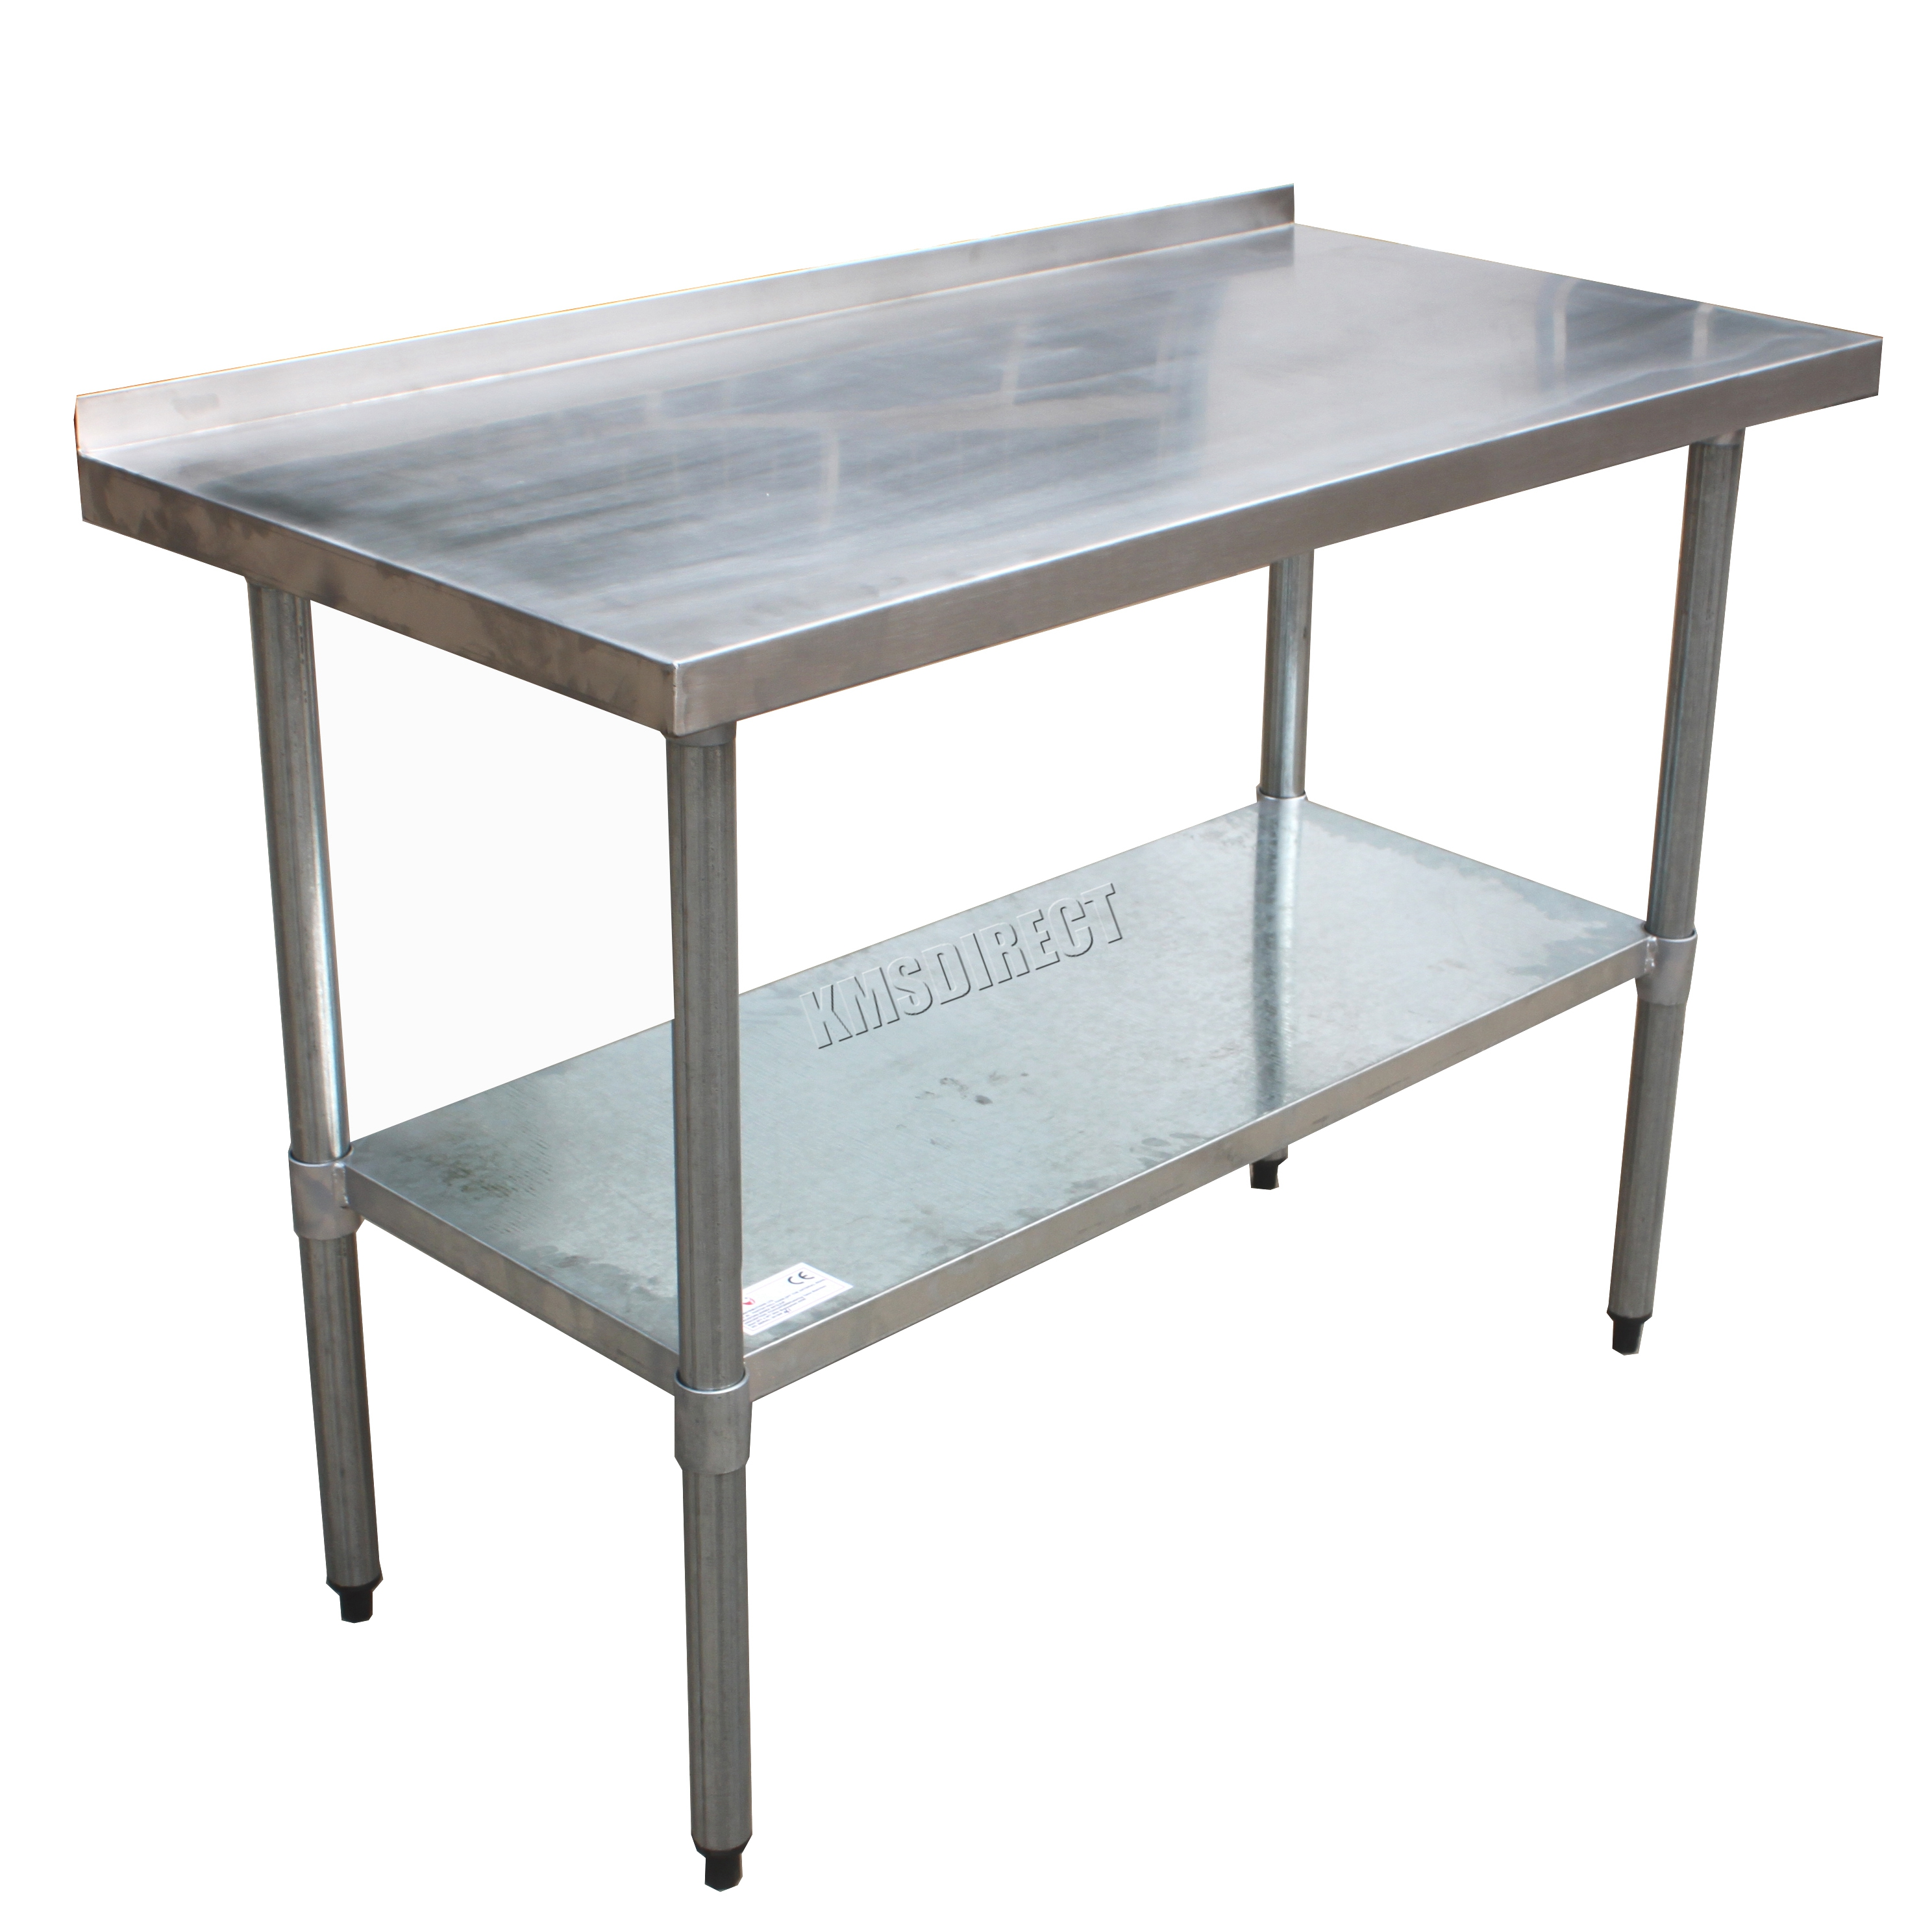 Sentinel FoxHunter Stainless Steel Catering Table Backsplash Work Bench  Kitchen 2FT X 4FT